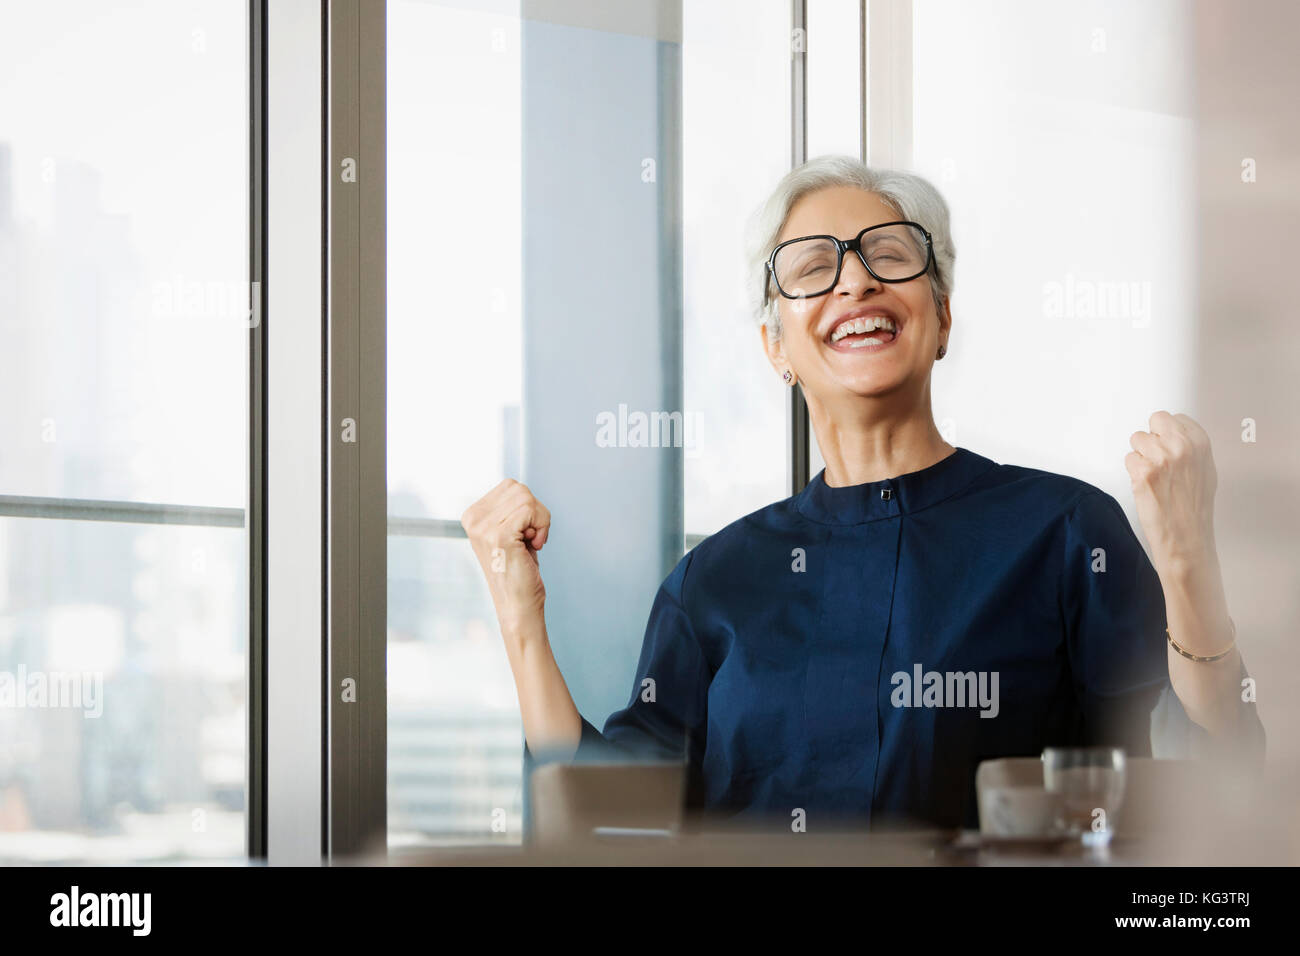 Smiling senior woman wearing Eye glasses cheering with hand fists Photo Stock